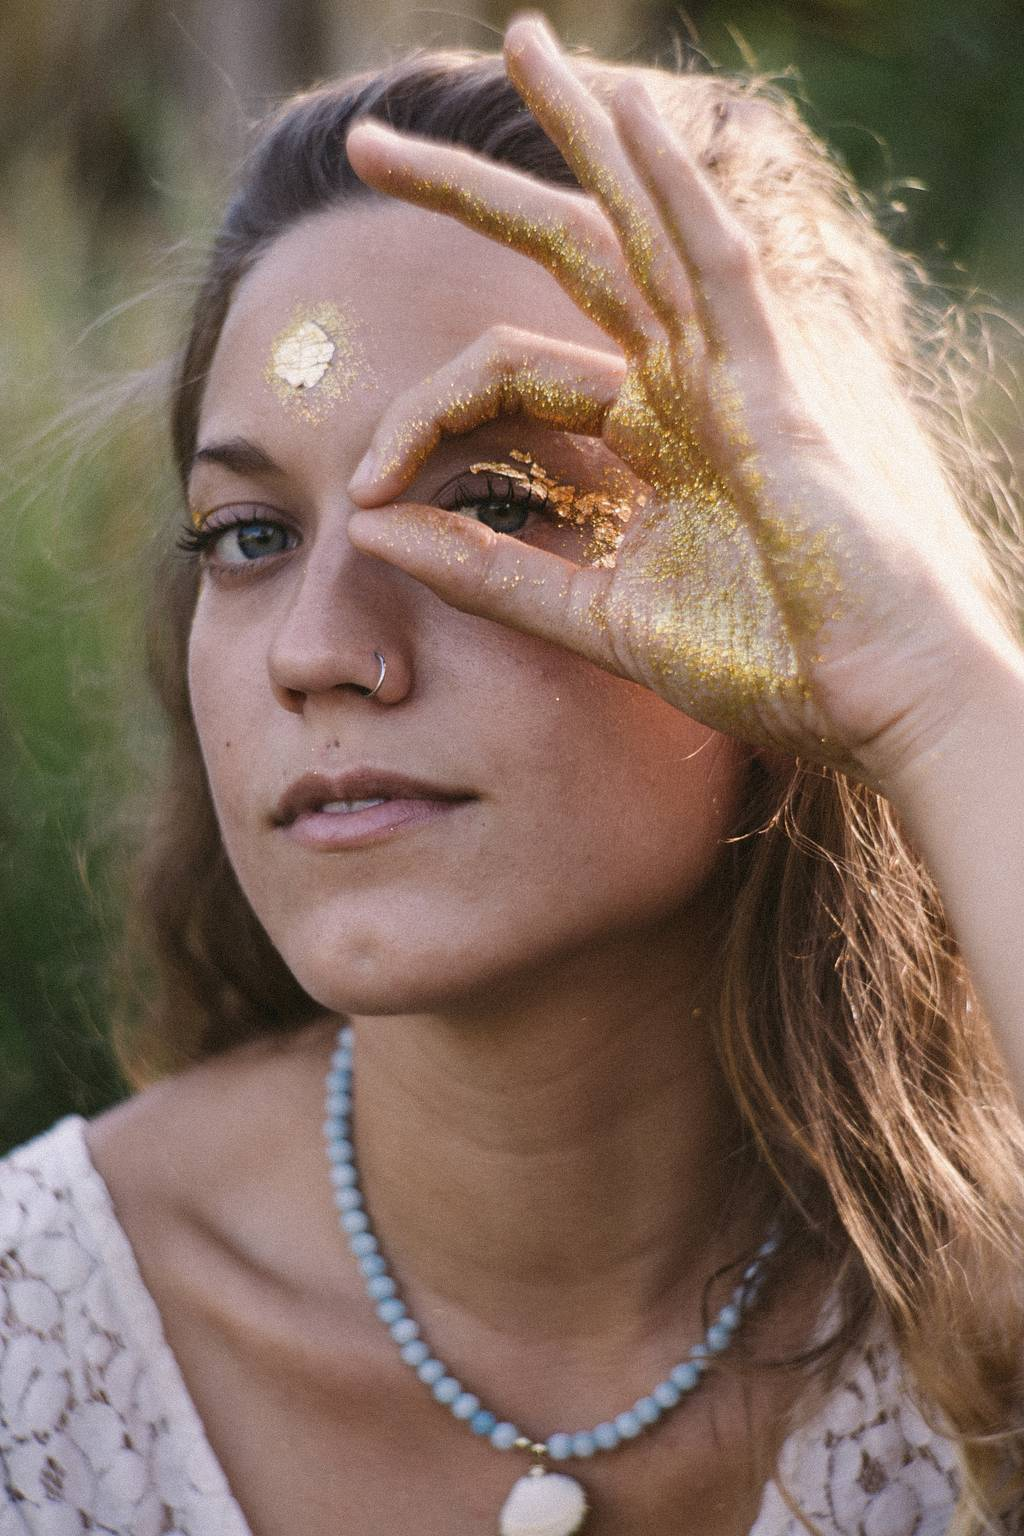 Photographing Mystic Beauty with the Lomography Petzval 85 Art Lens